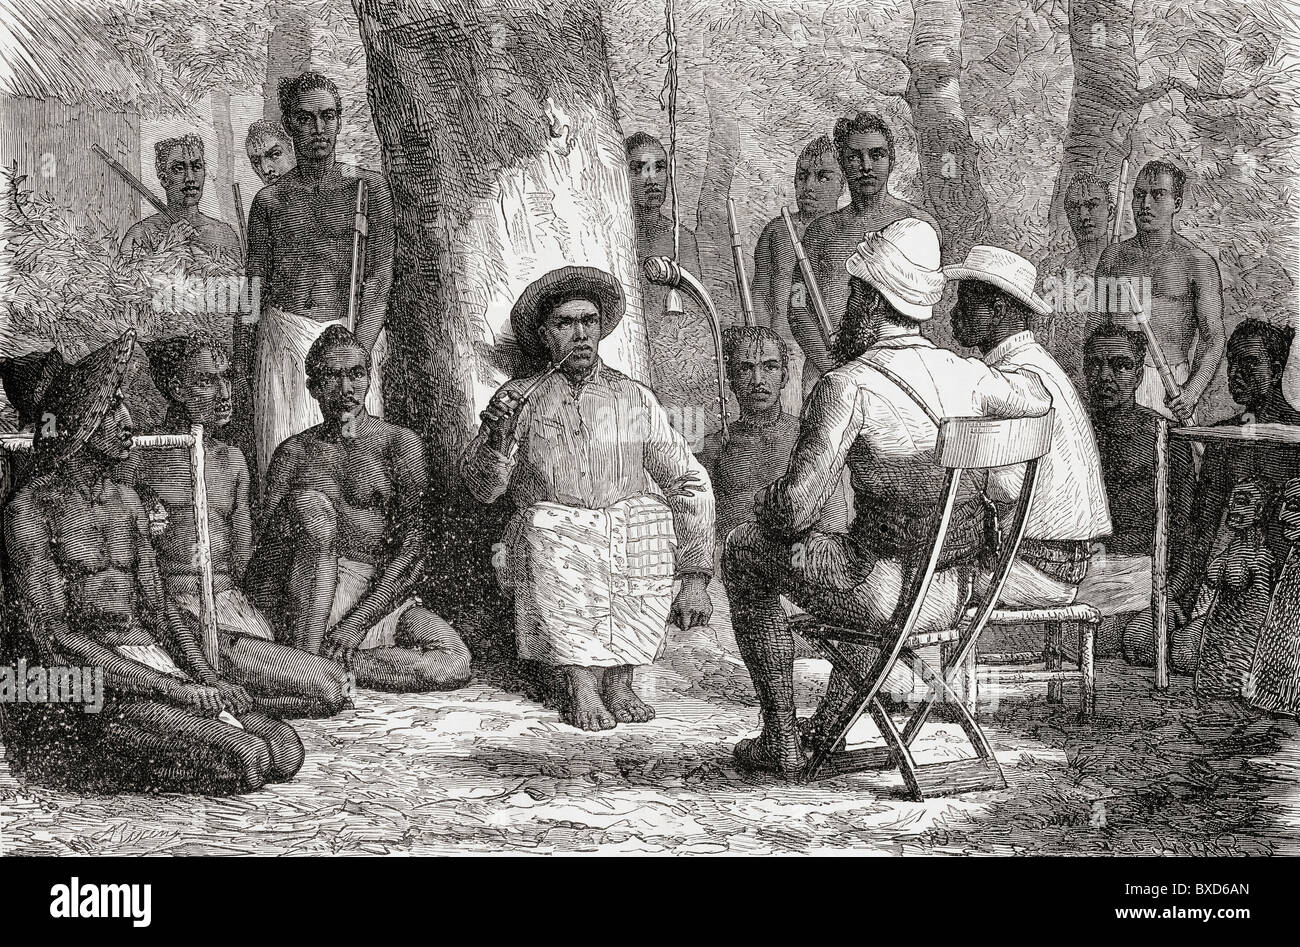 Verney Lovett Cameron visiting Katenndé, during his travels in Africa in 1872 to 1876. - Stock Image